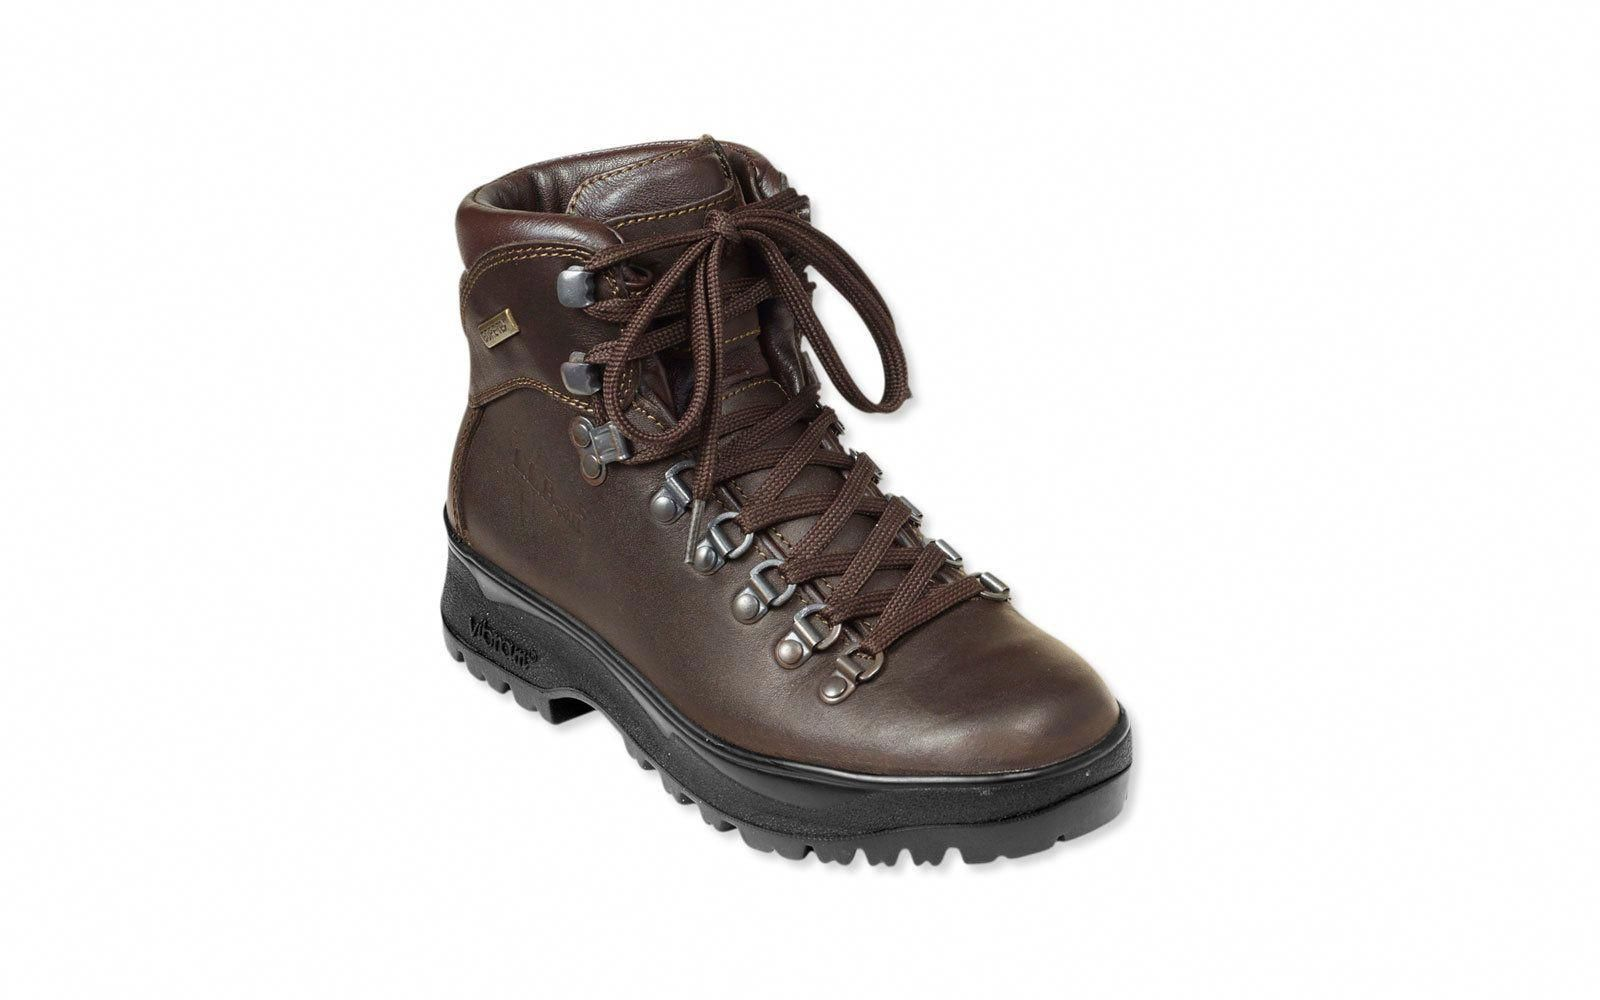 c8cfa4e494a L.L.Bean Women's Gore-Tex Cresta Hiking Boots | These hiking shoes ...